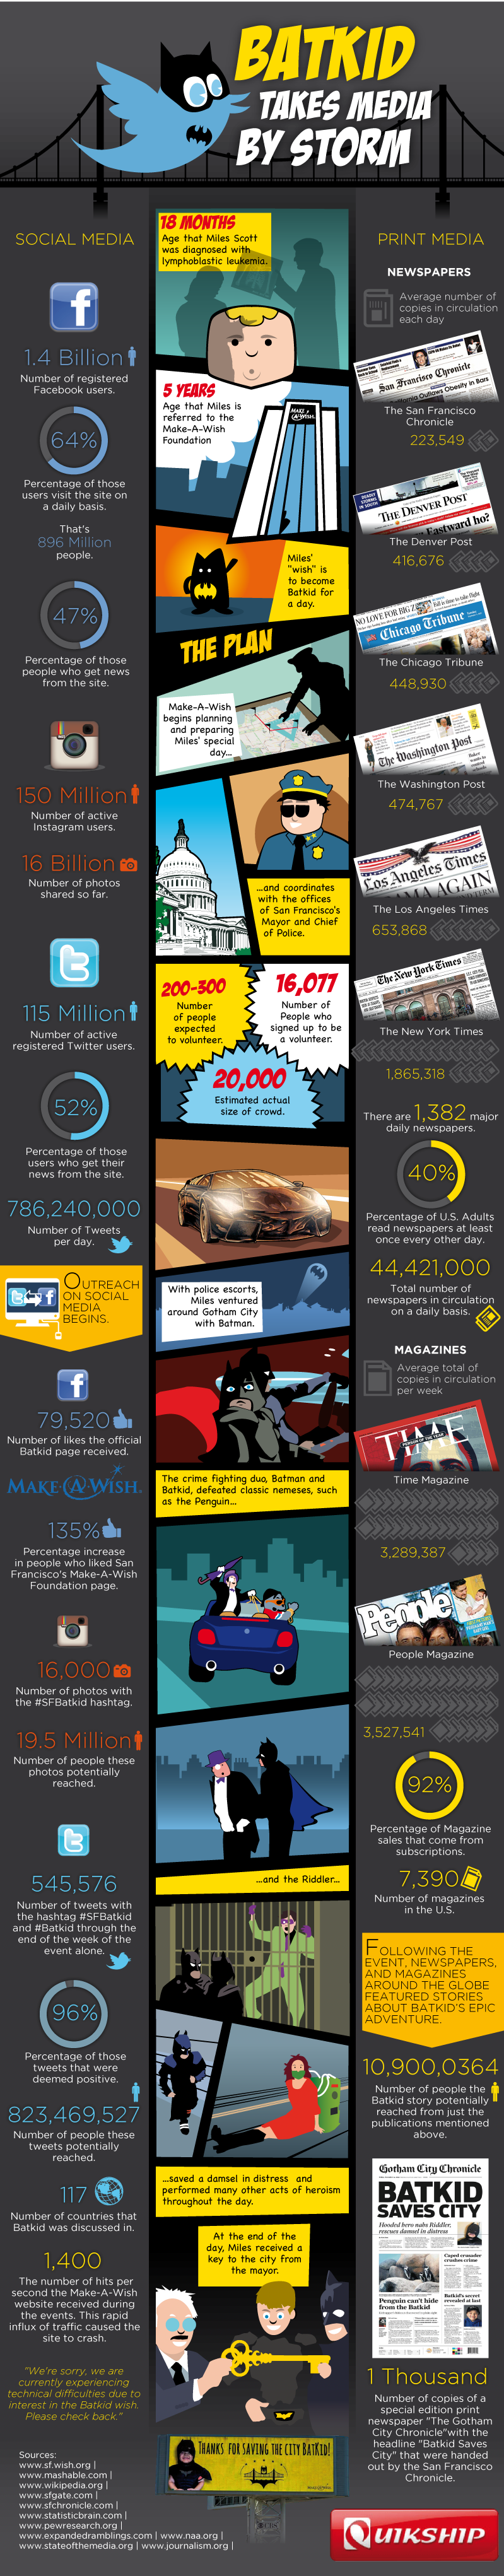 Batkid Takes Media By Storm Infographic